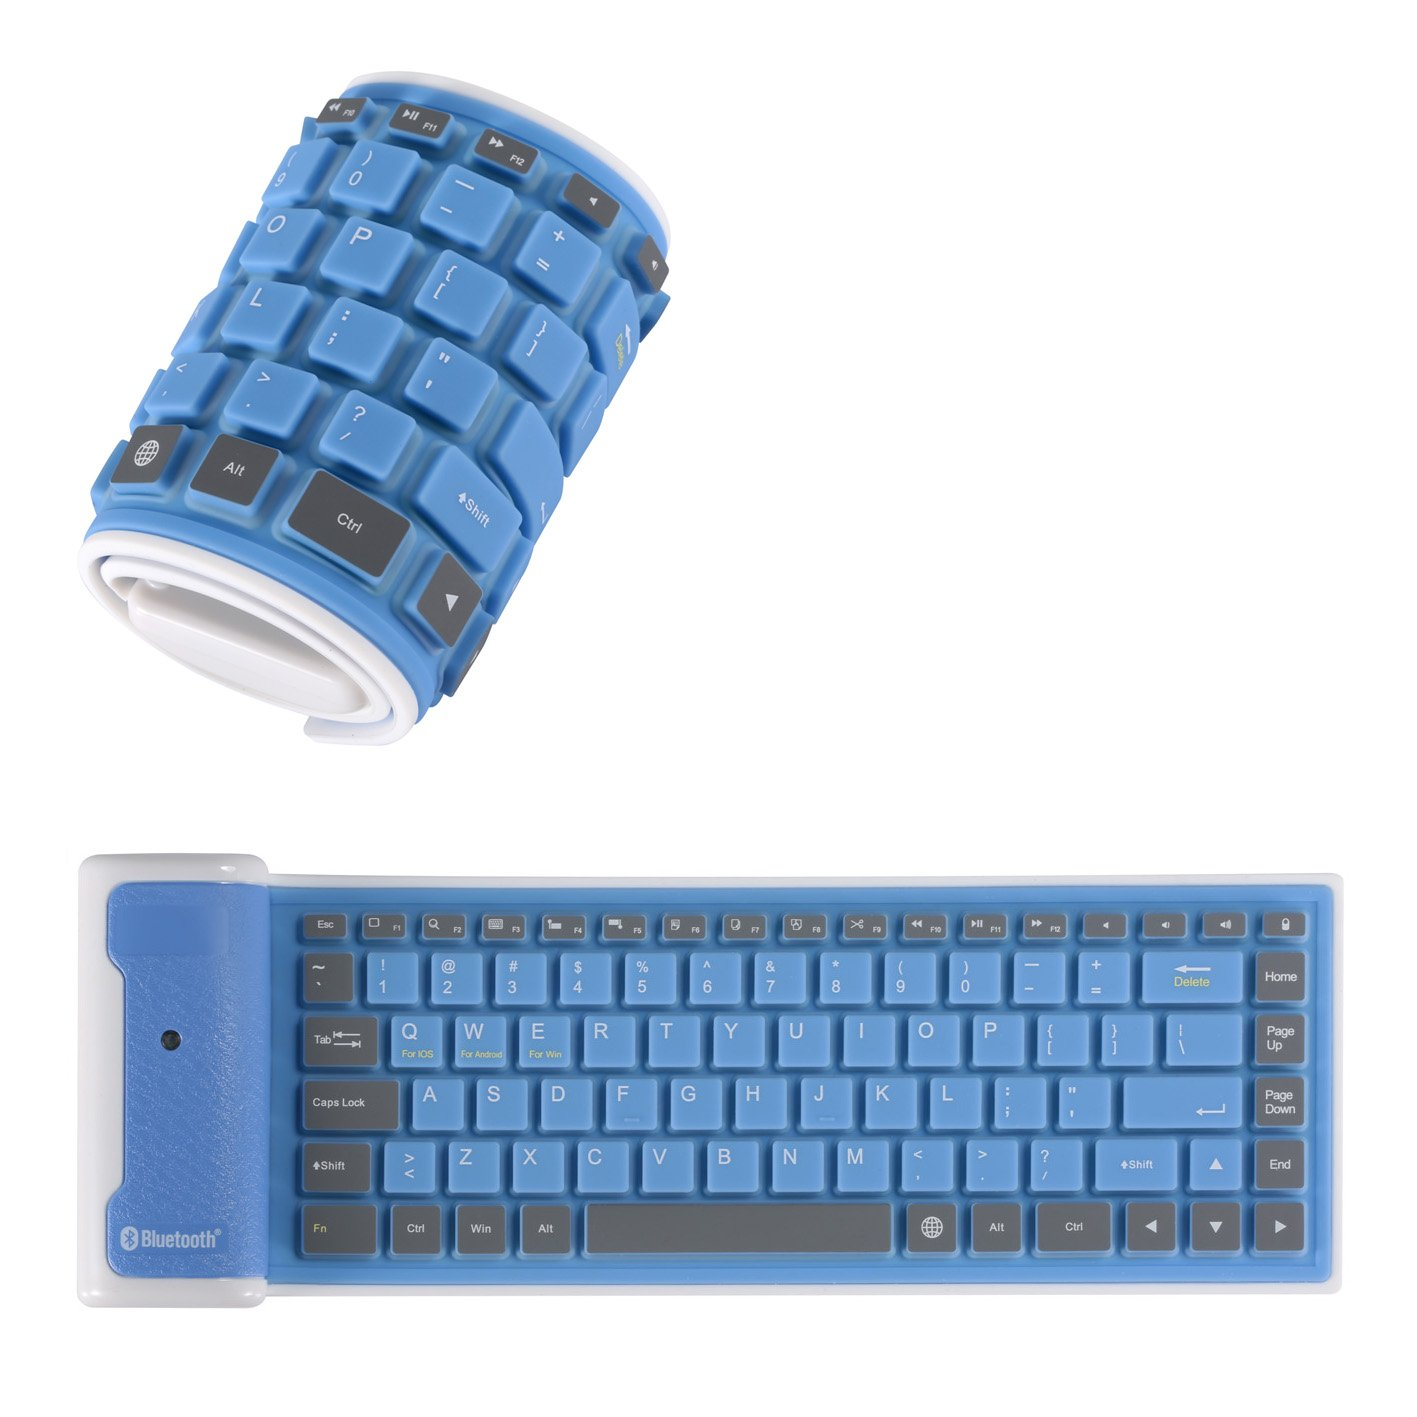 Yuzihan Roll up Mini Bluetooth Keyboard For Pad Tablets Phones Portable Silicone Rollup Waterproof Flexible Keyboard Blue